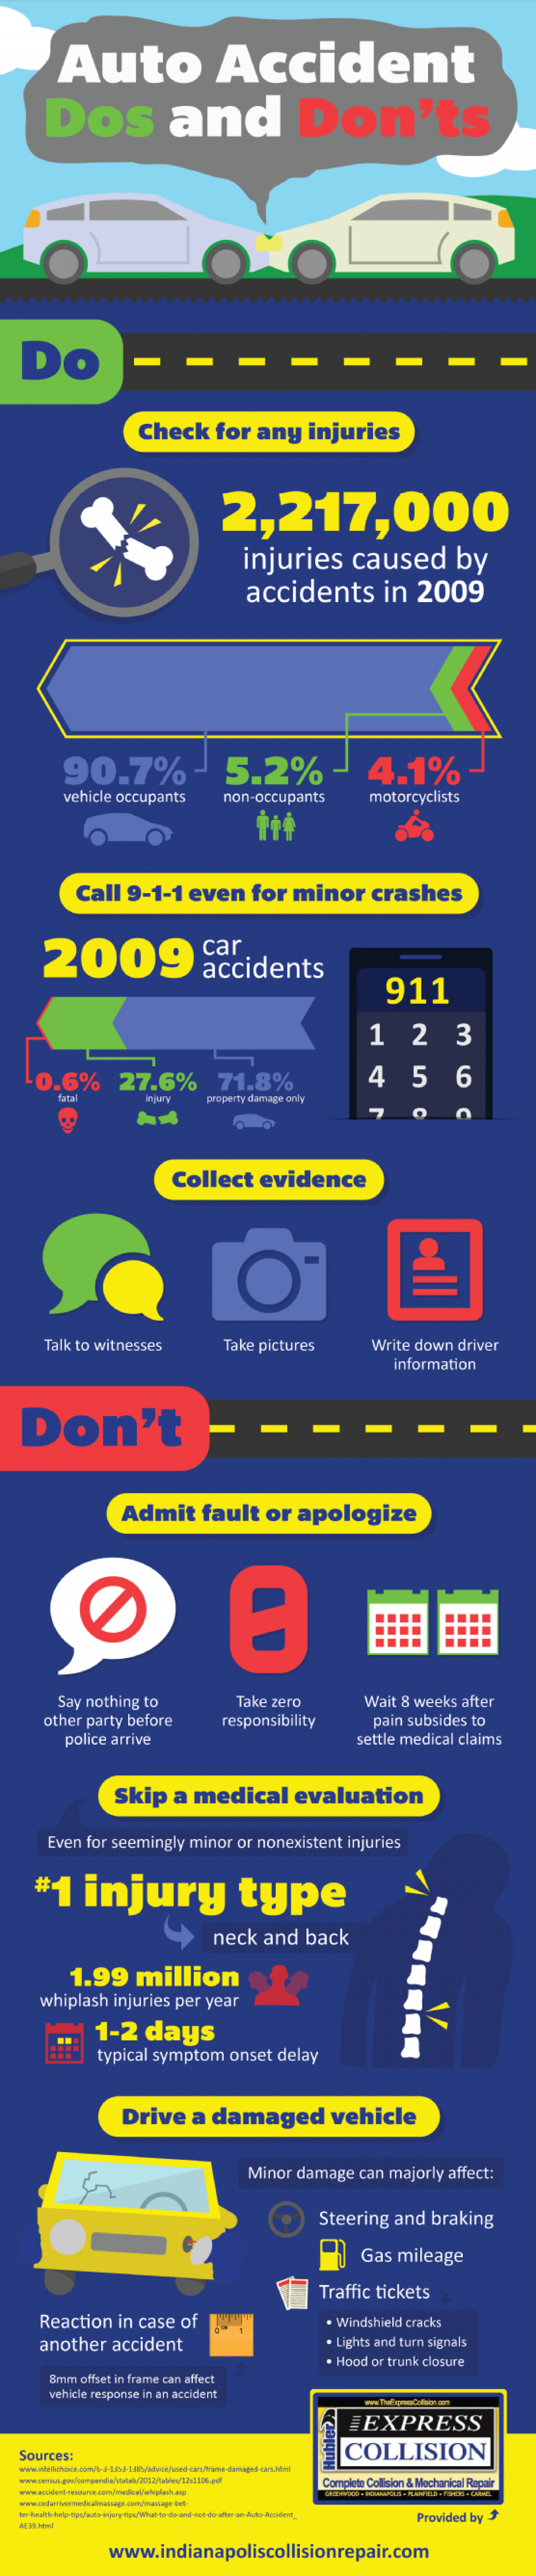 Auto Accident Dos and Don'ts Infographic